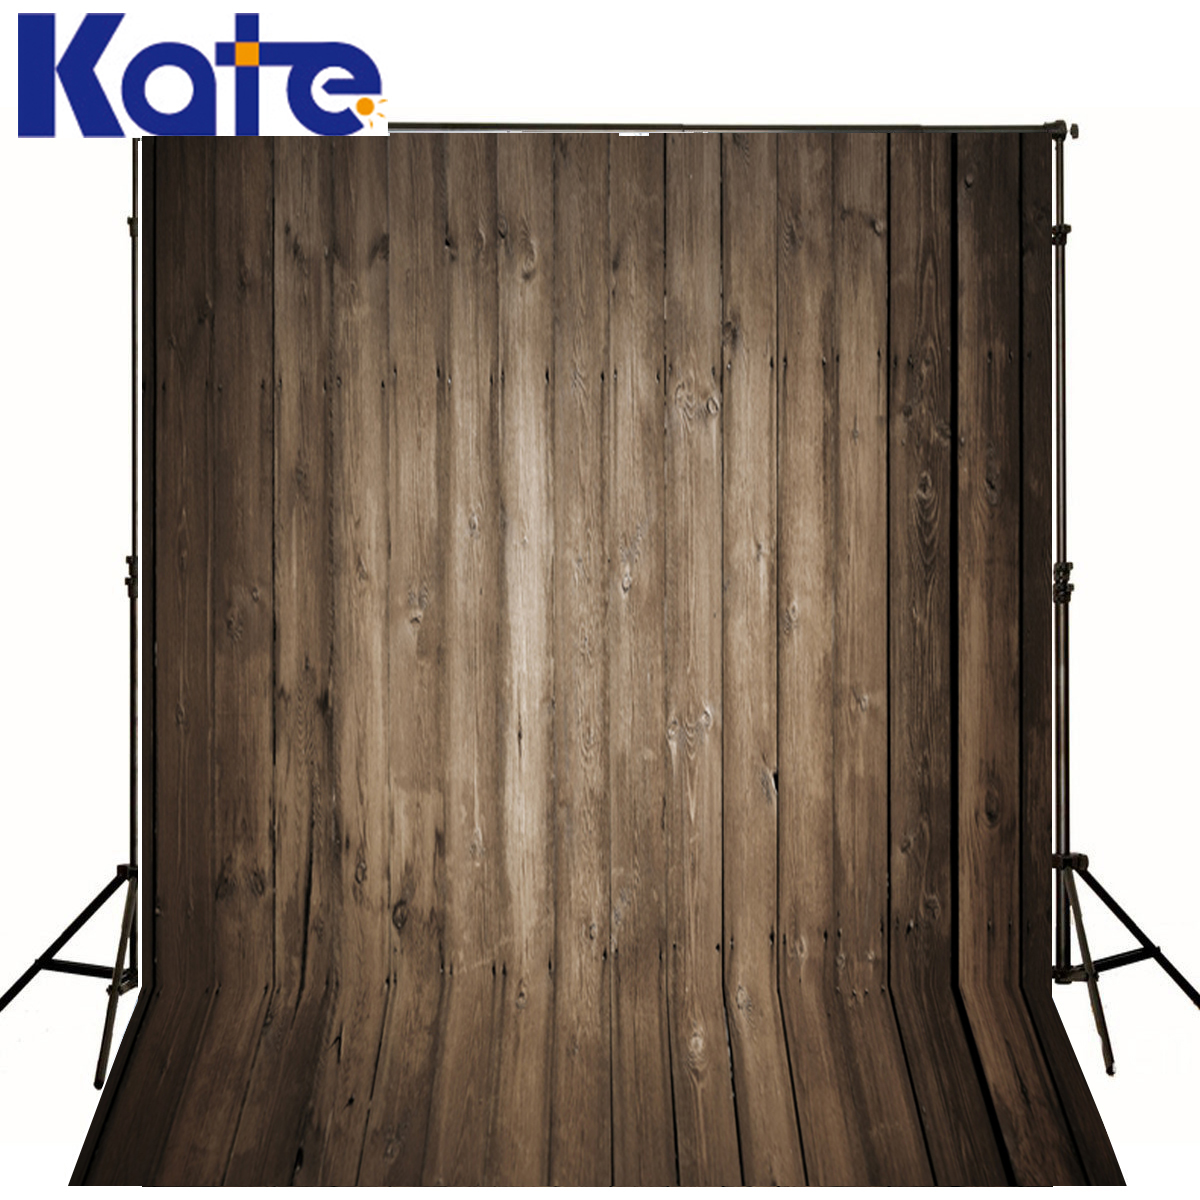 Kate Newborn Baby Backdrop Photography Brown Wooden Wall Background Photography Wood Texture Floor Backdrops For Photo Studio цена 2016